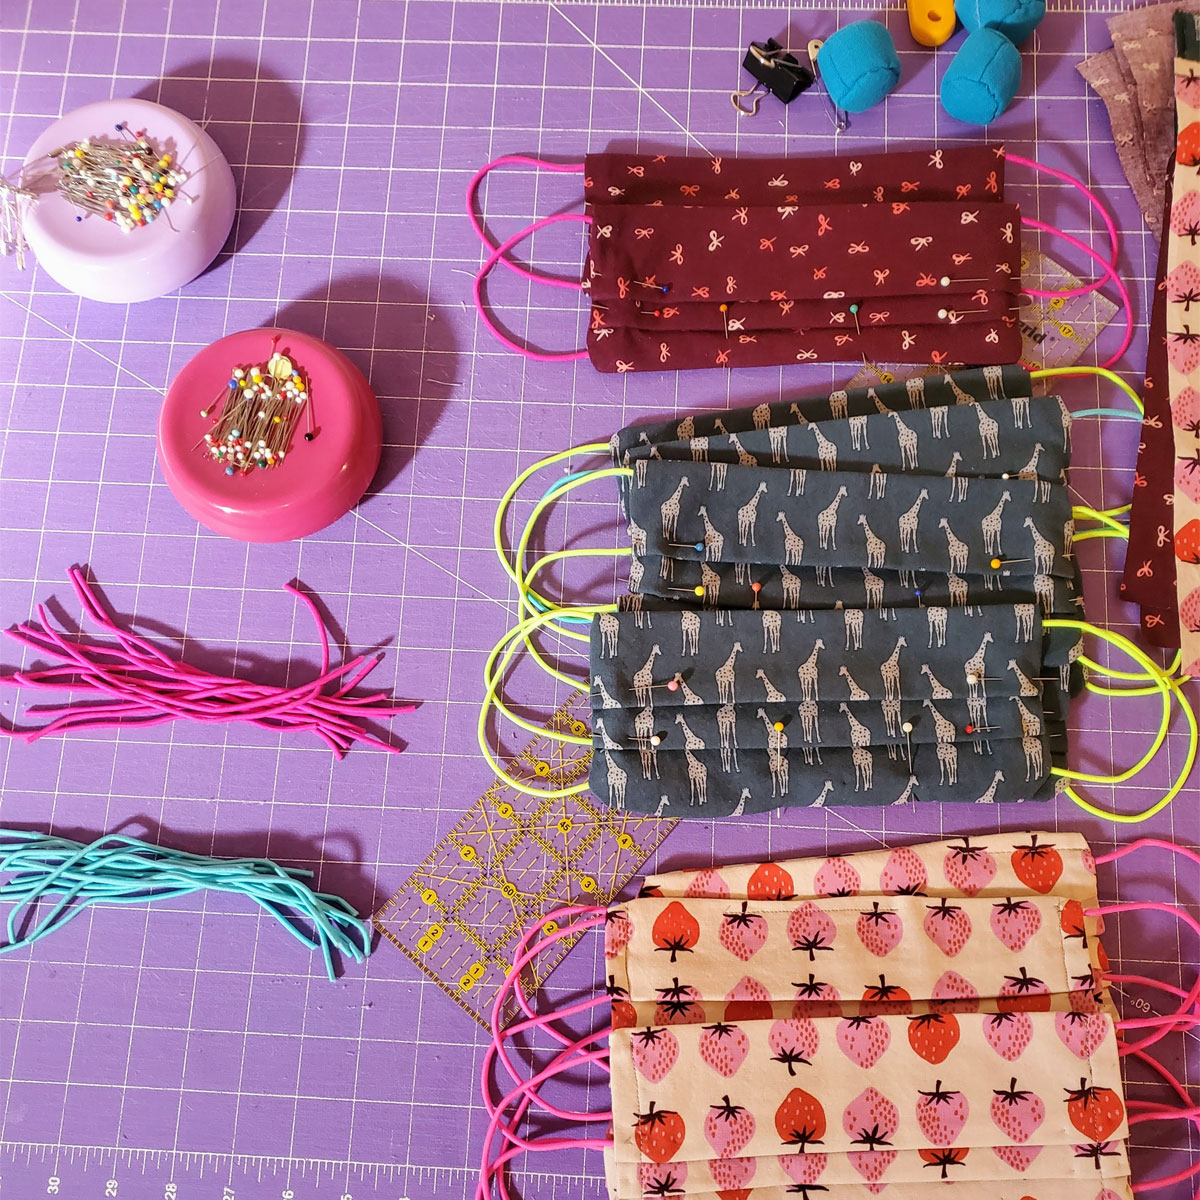 Fabric, elastic and more shown for making handmade masks